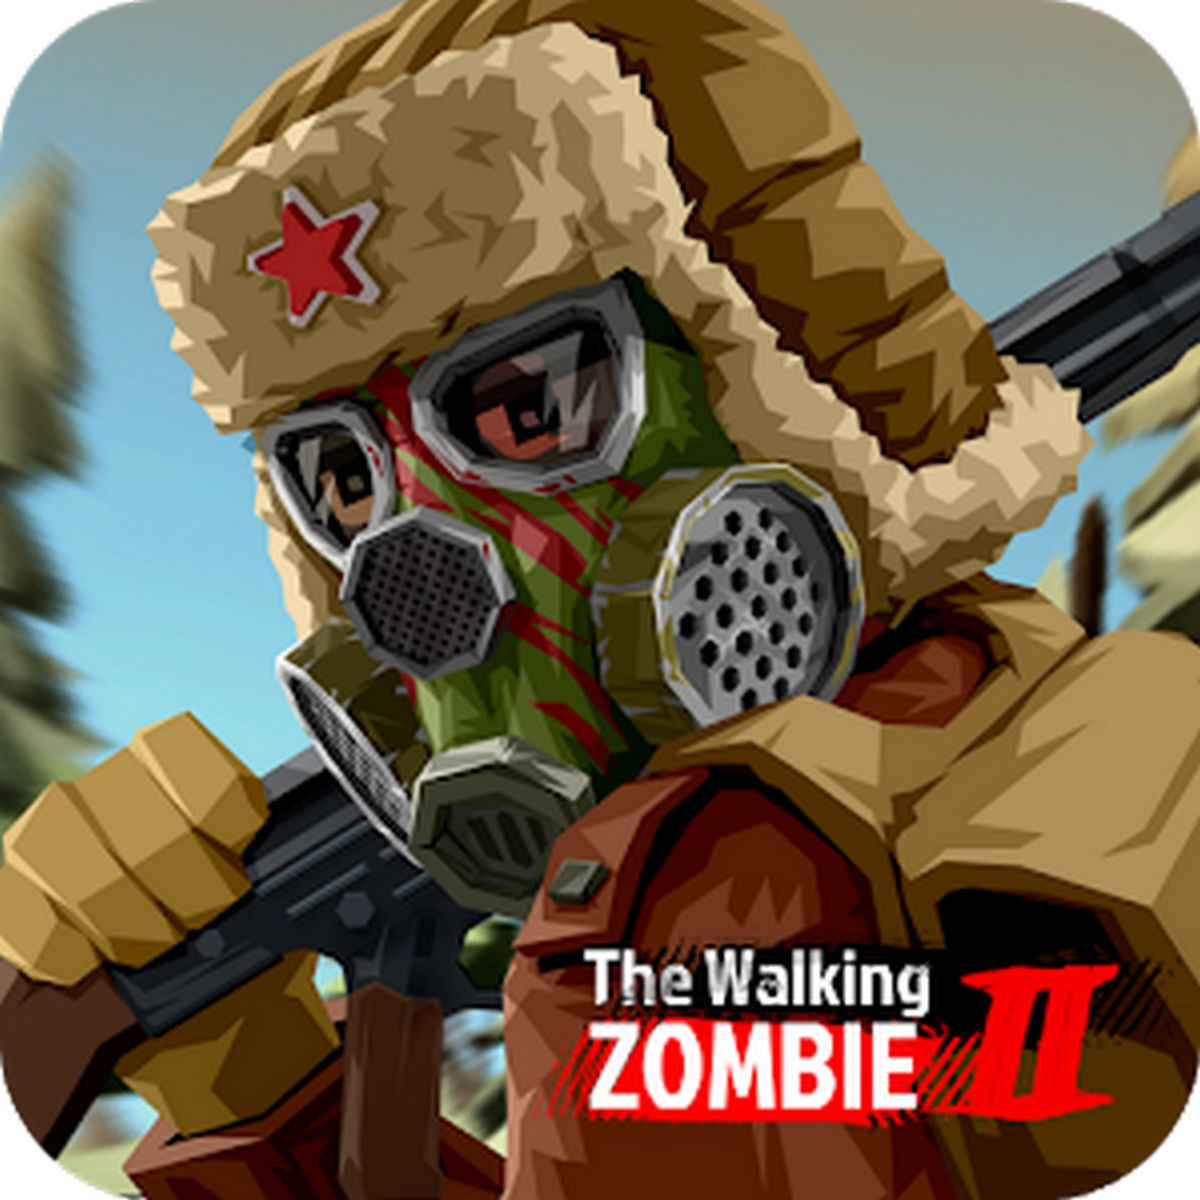 The Walking Zombie 2 Zombie shooter APK MOD